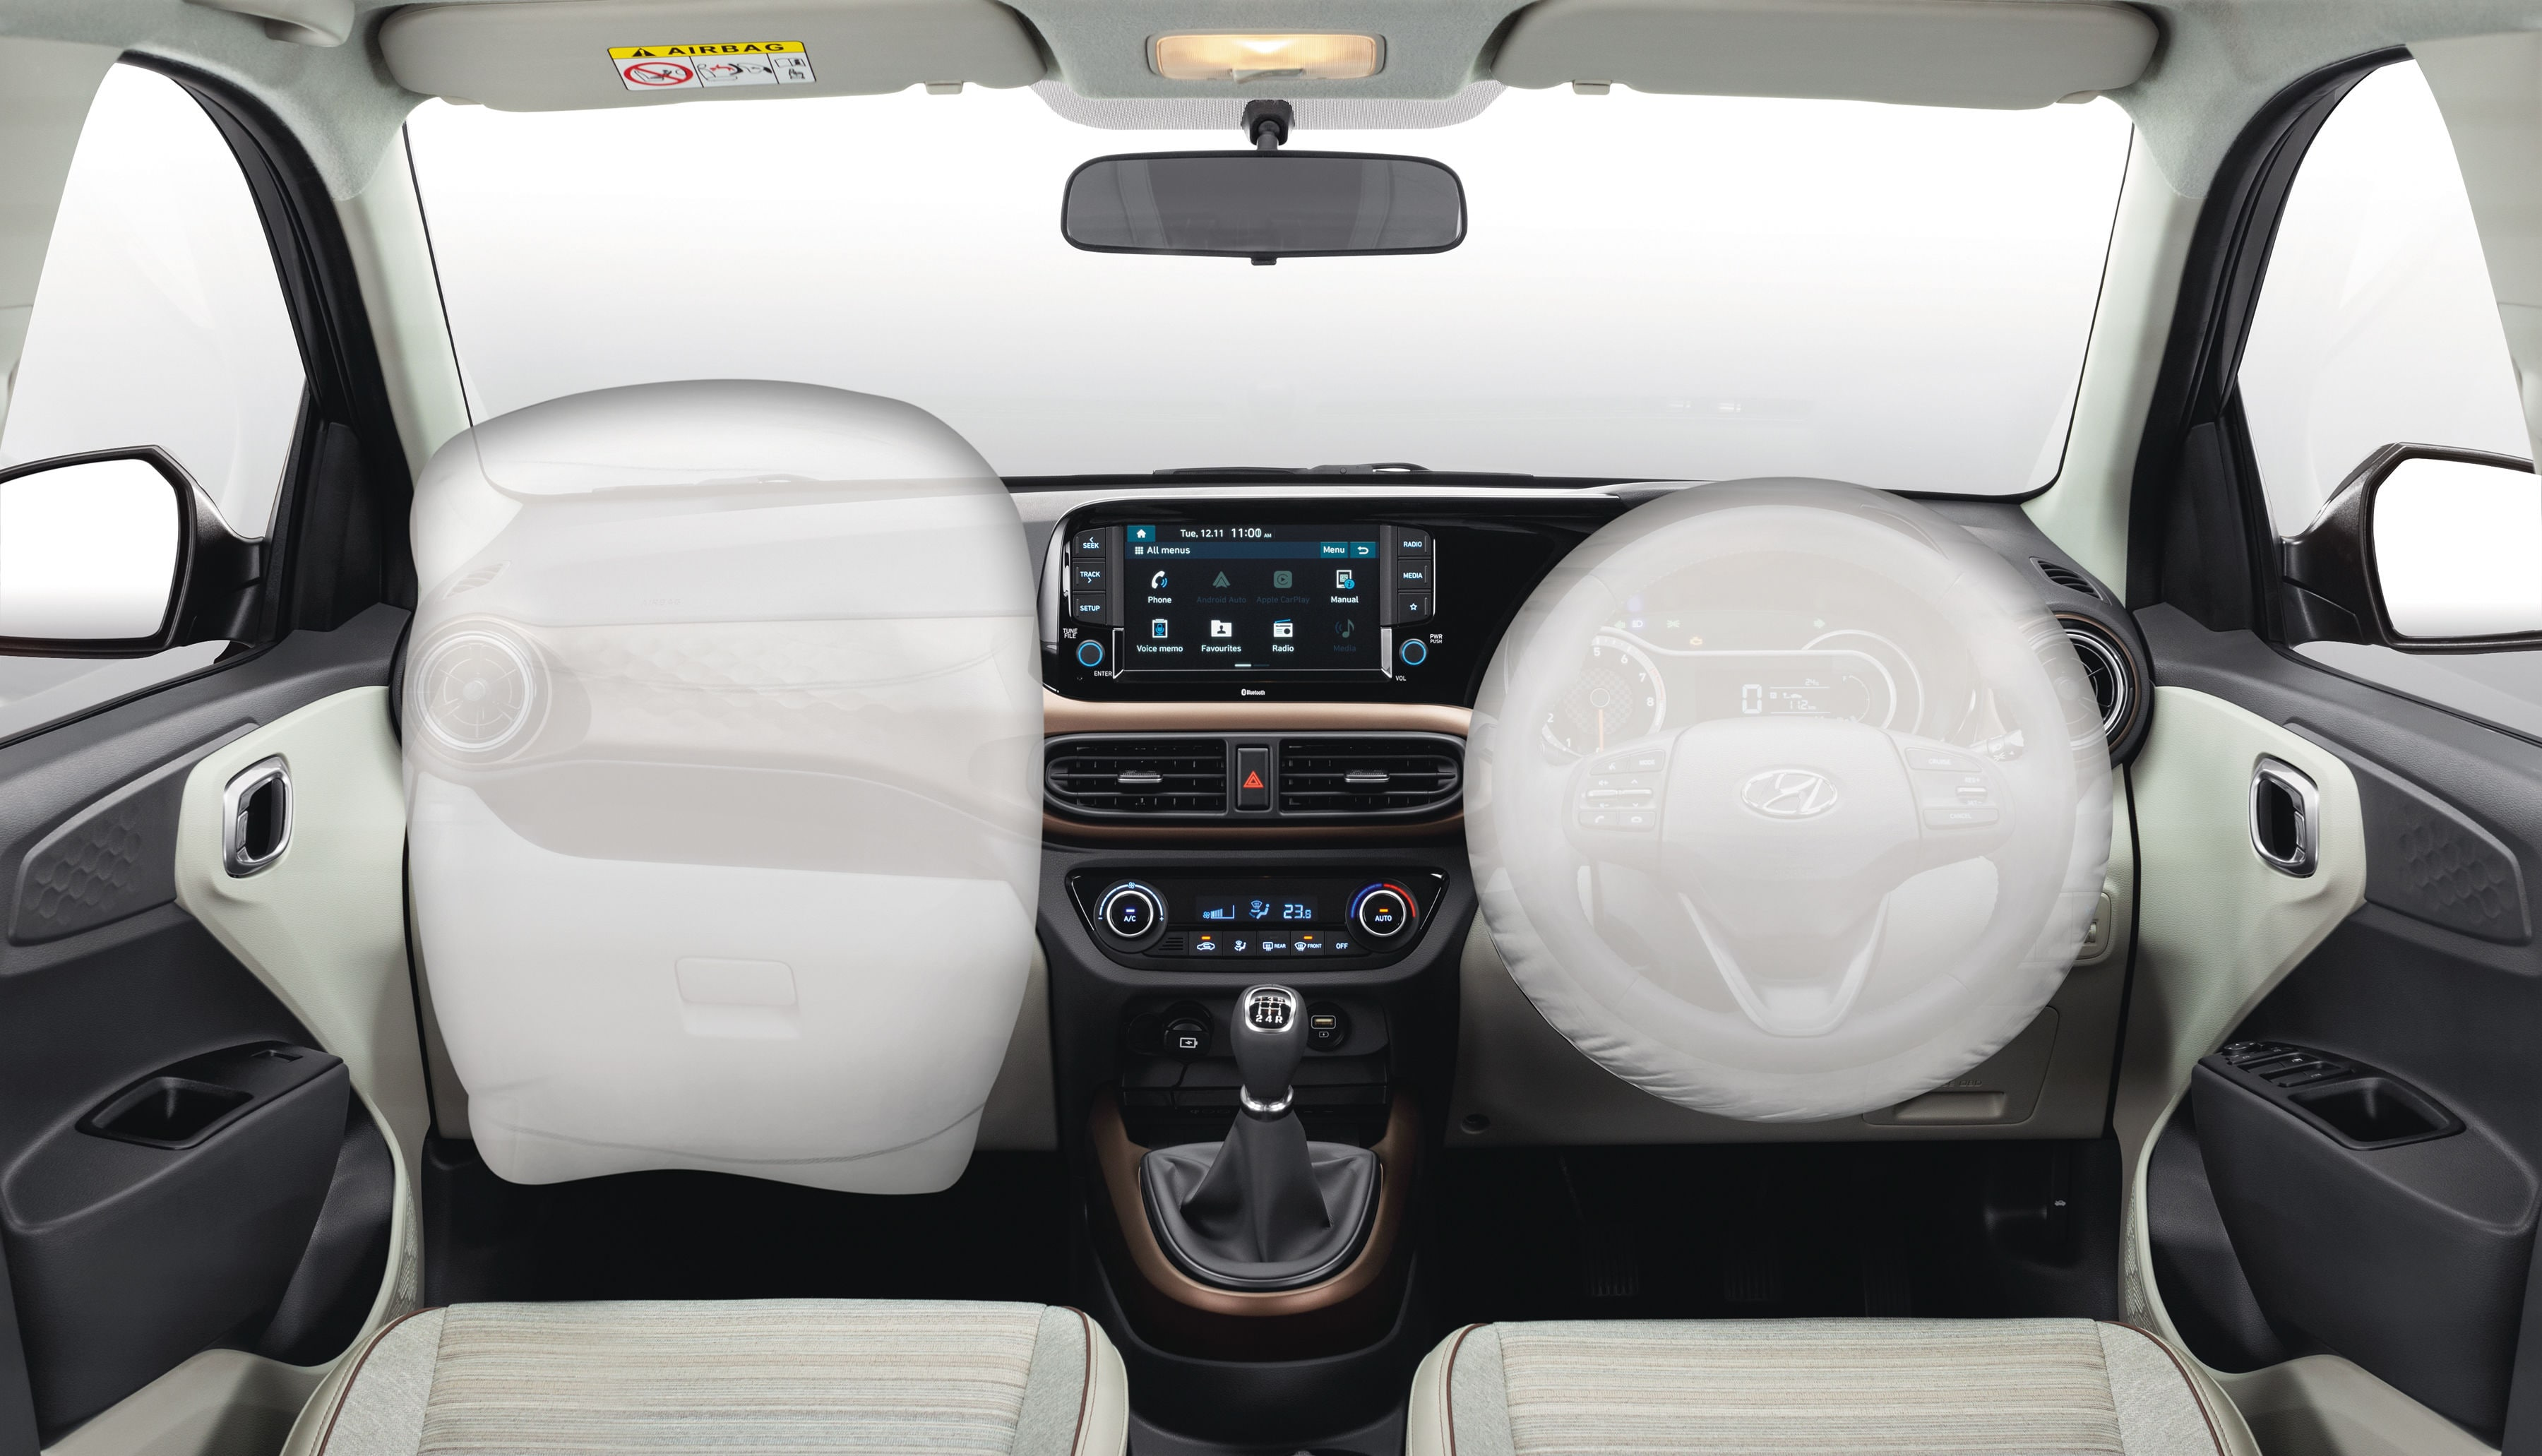 Front dual airbags and ABS with EBD come as standard on the Aura.